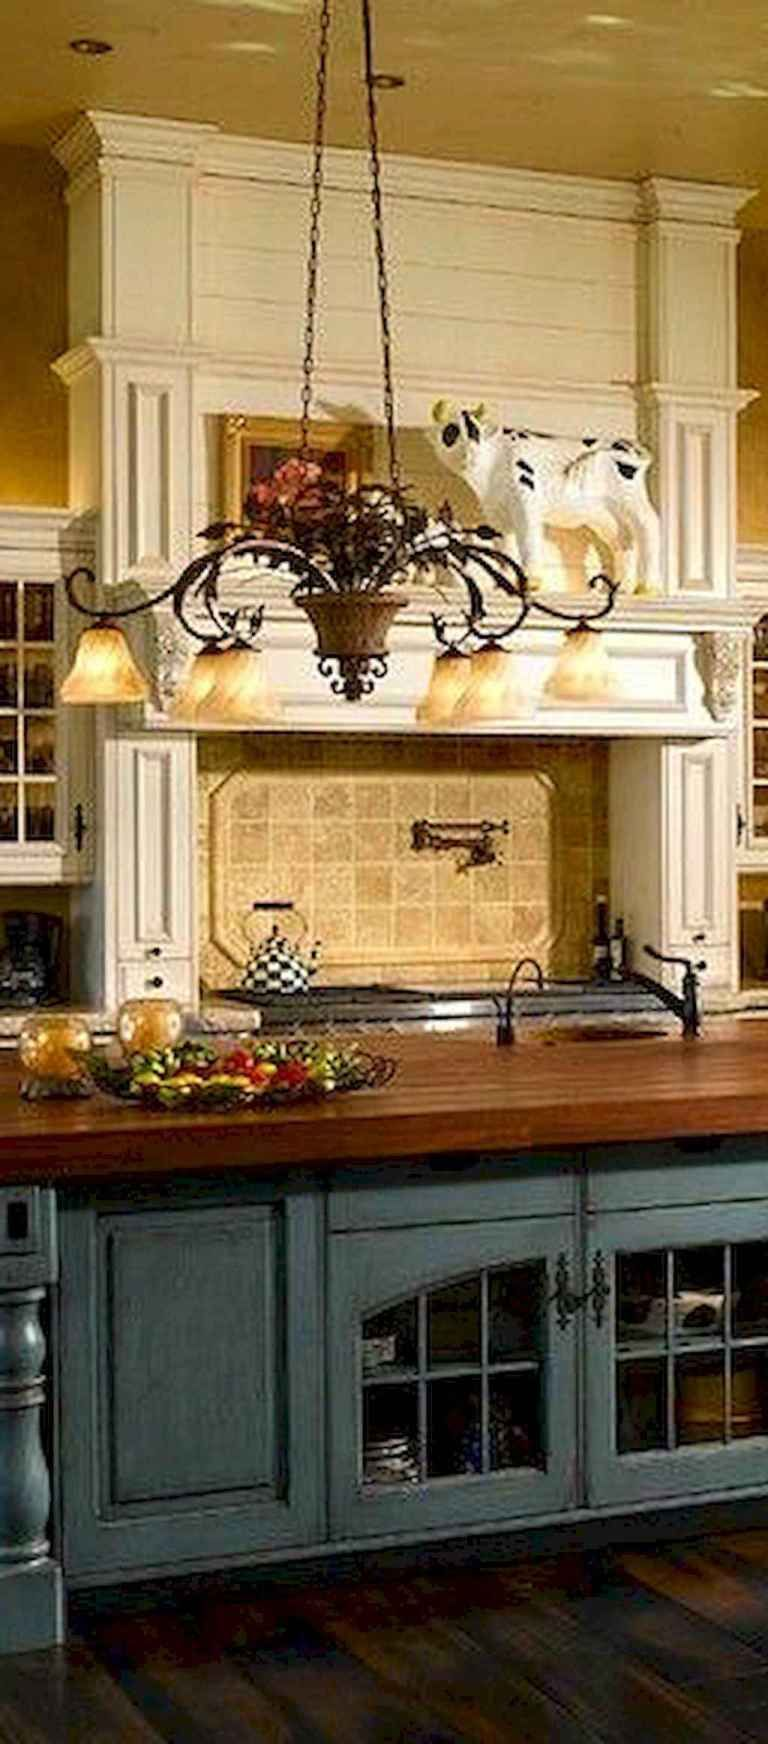 Incredible french country kitchen design ideas (1